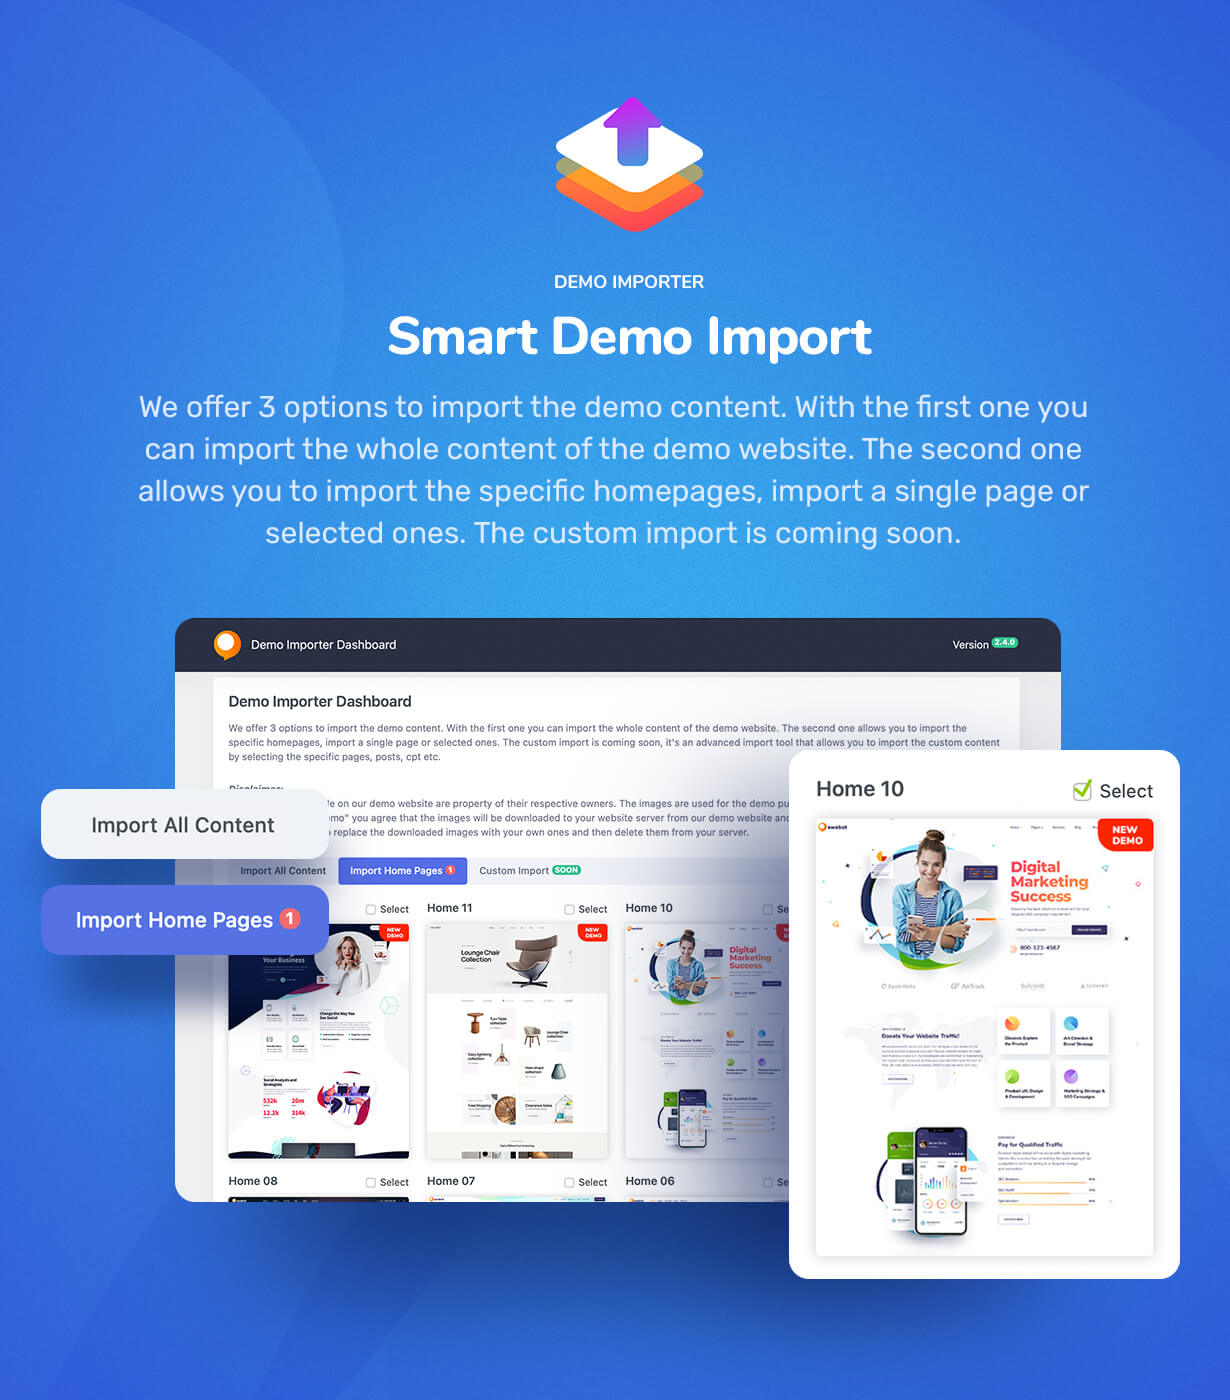 Ewebot - SEO and Marketing Agency WordPress Theme - 4